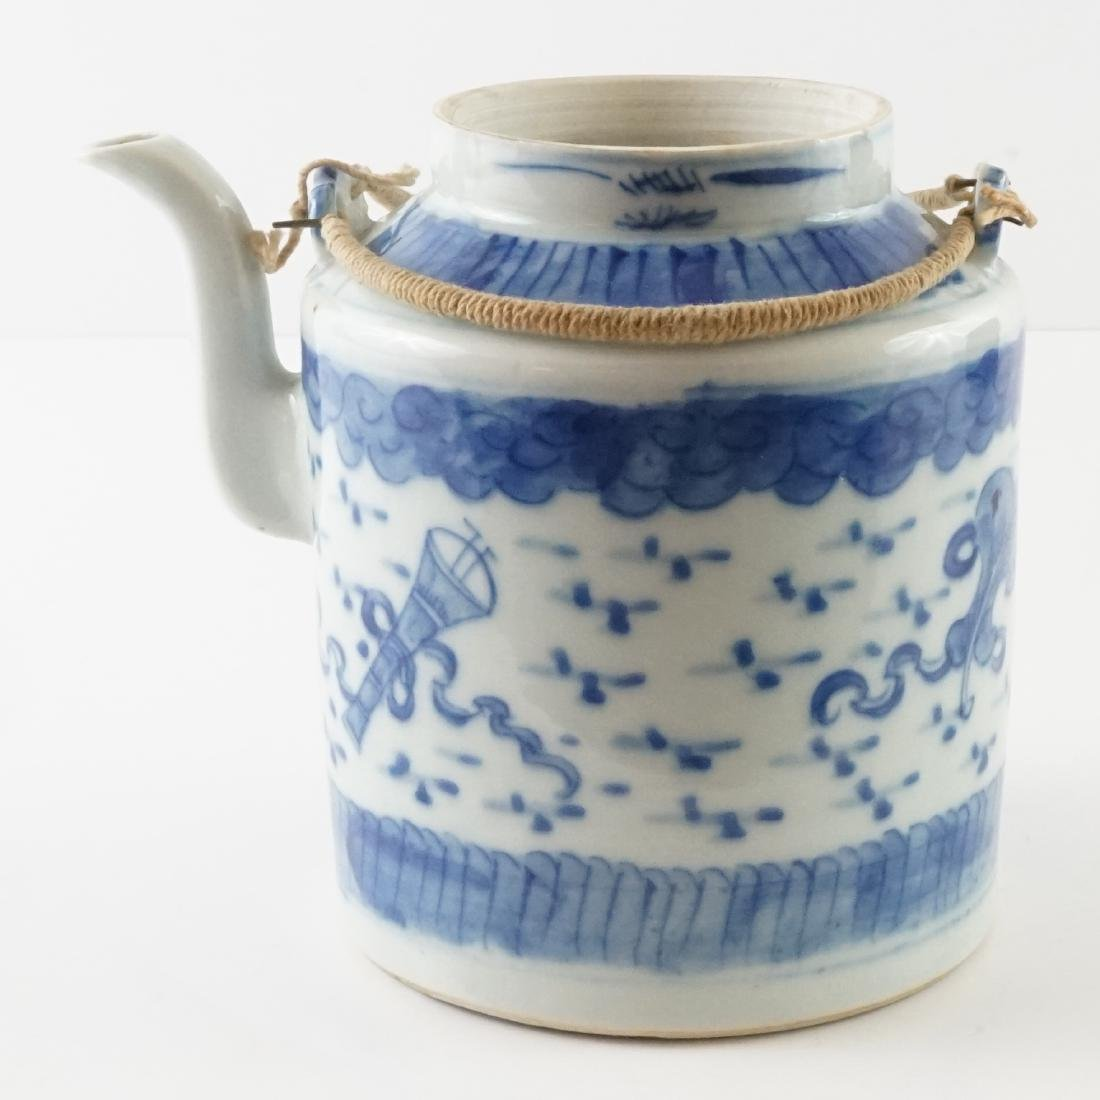 Old Chinese Teapot in Basket - 3